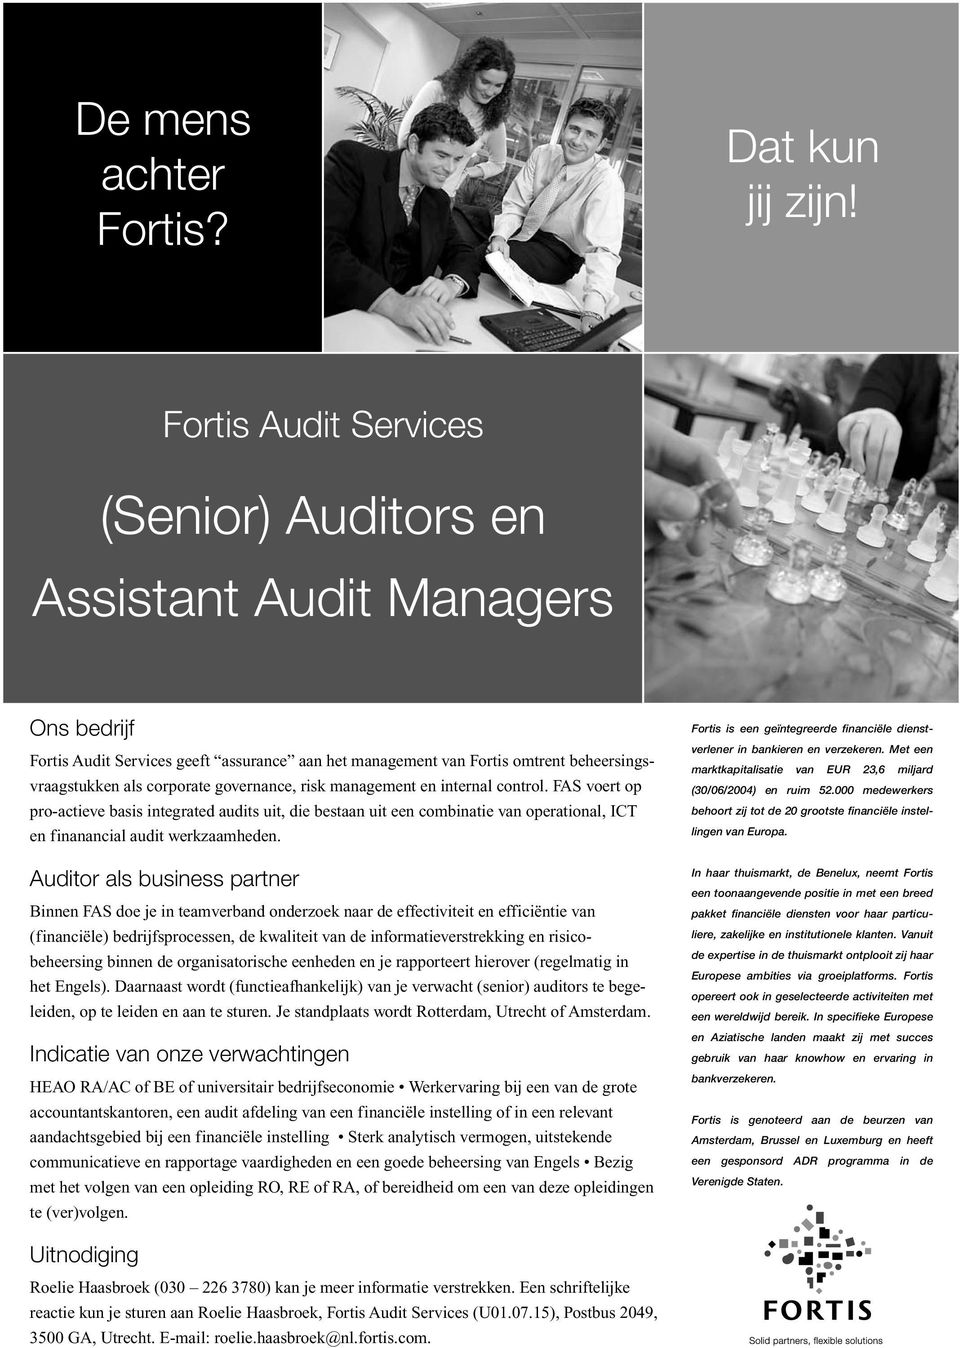 governance, risk management en internal control. FAS voert op pro-actieve basis integrated audits uit, die bestaan uit een combinatie van operational, ICT en finanancial audit werkzaamheden.